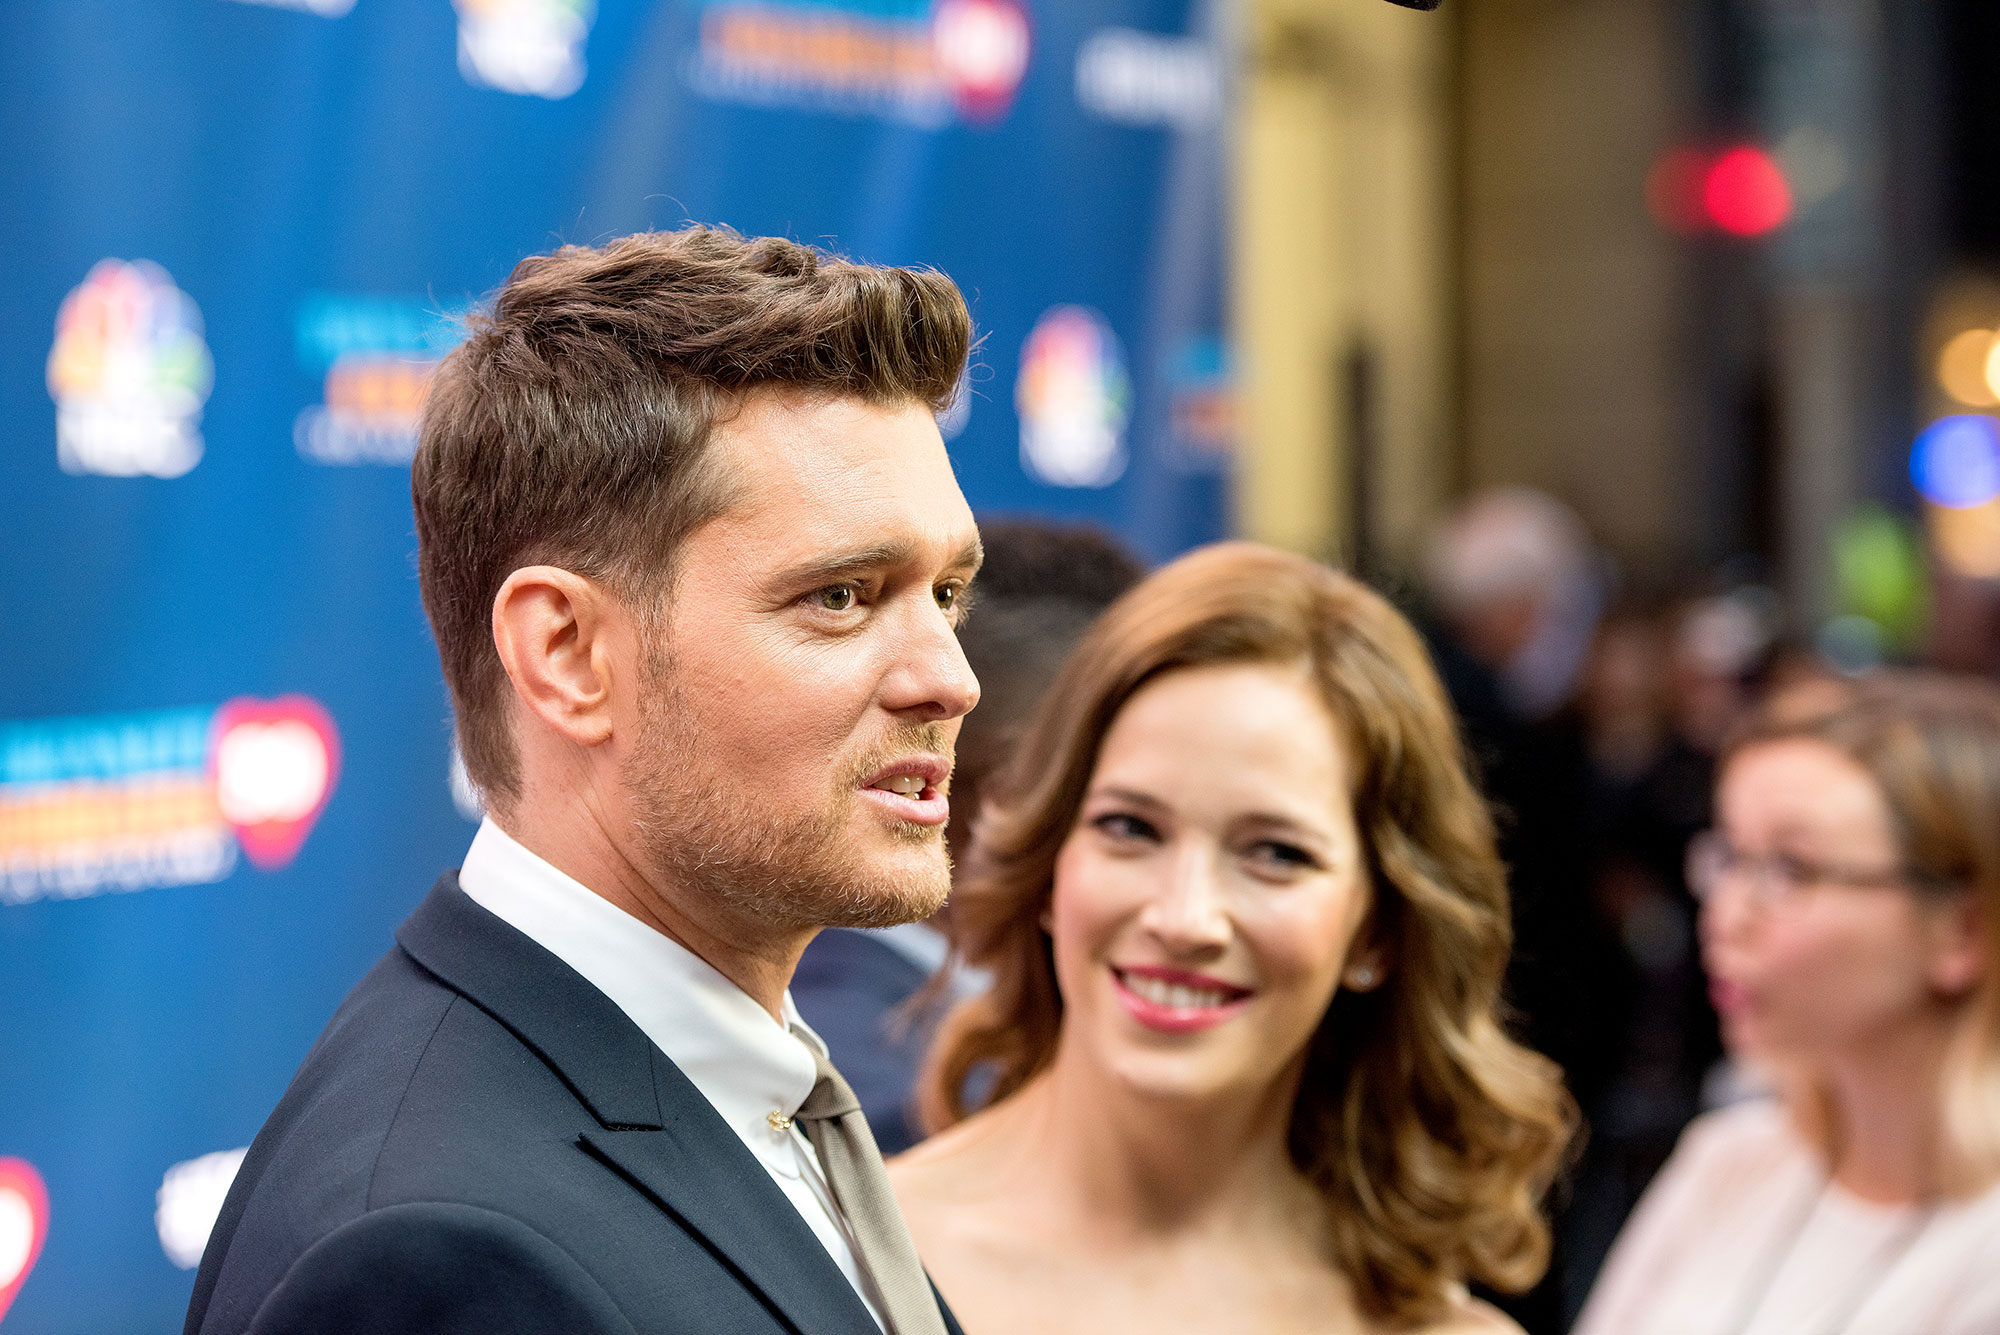 Singer Michael Buble and Luisana Lopilato attend Tony Bennett Celebrates 90: The Best Is Yet To Come at Radio City Music Hall on September 15, 2016 in New York City.